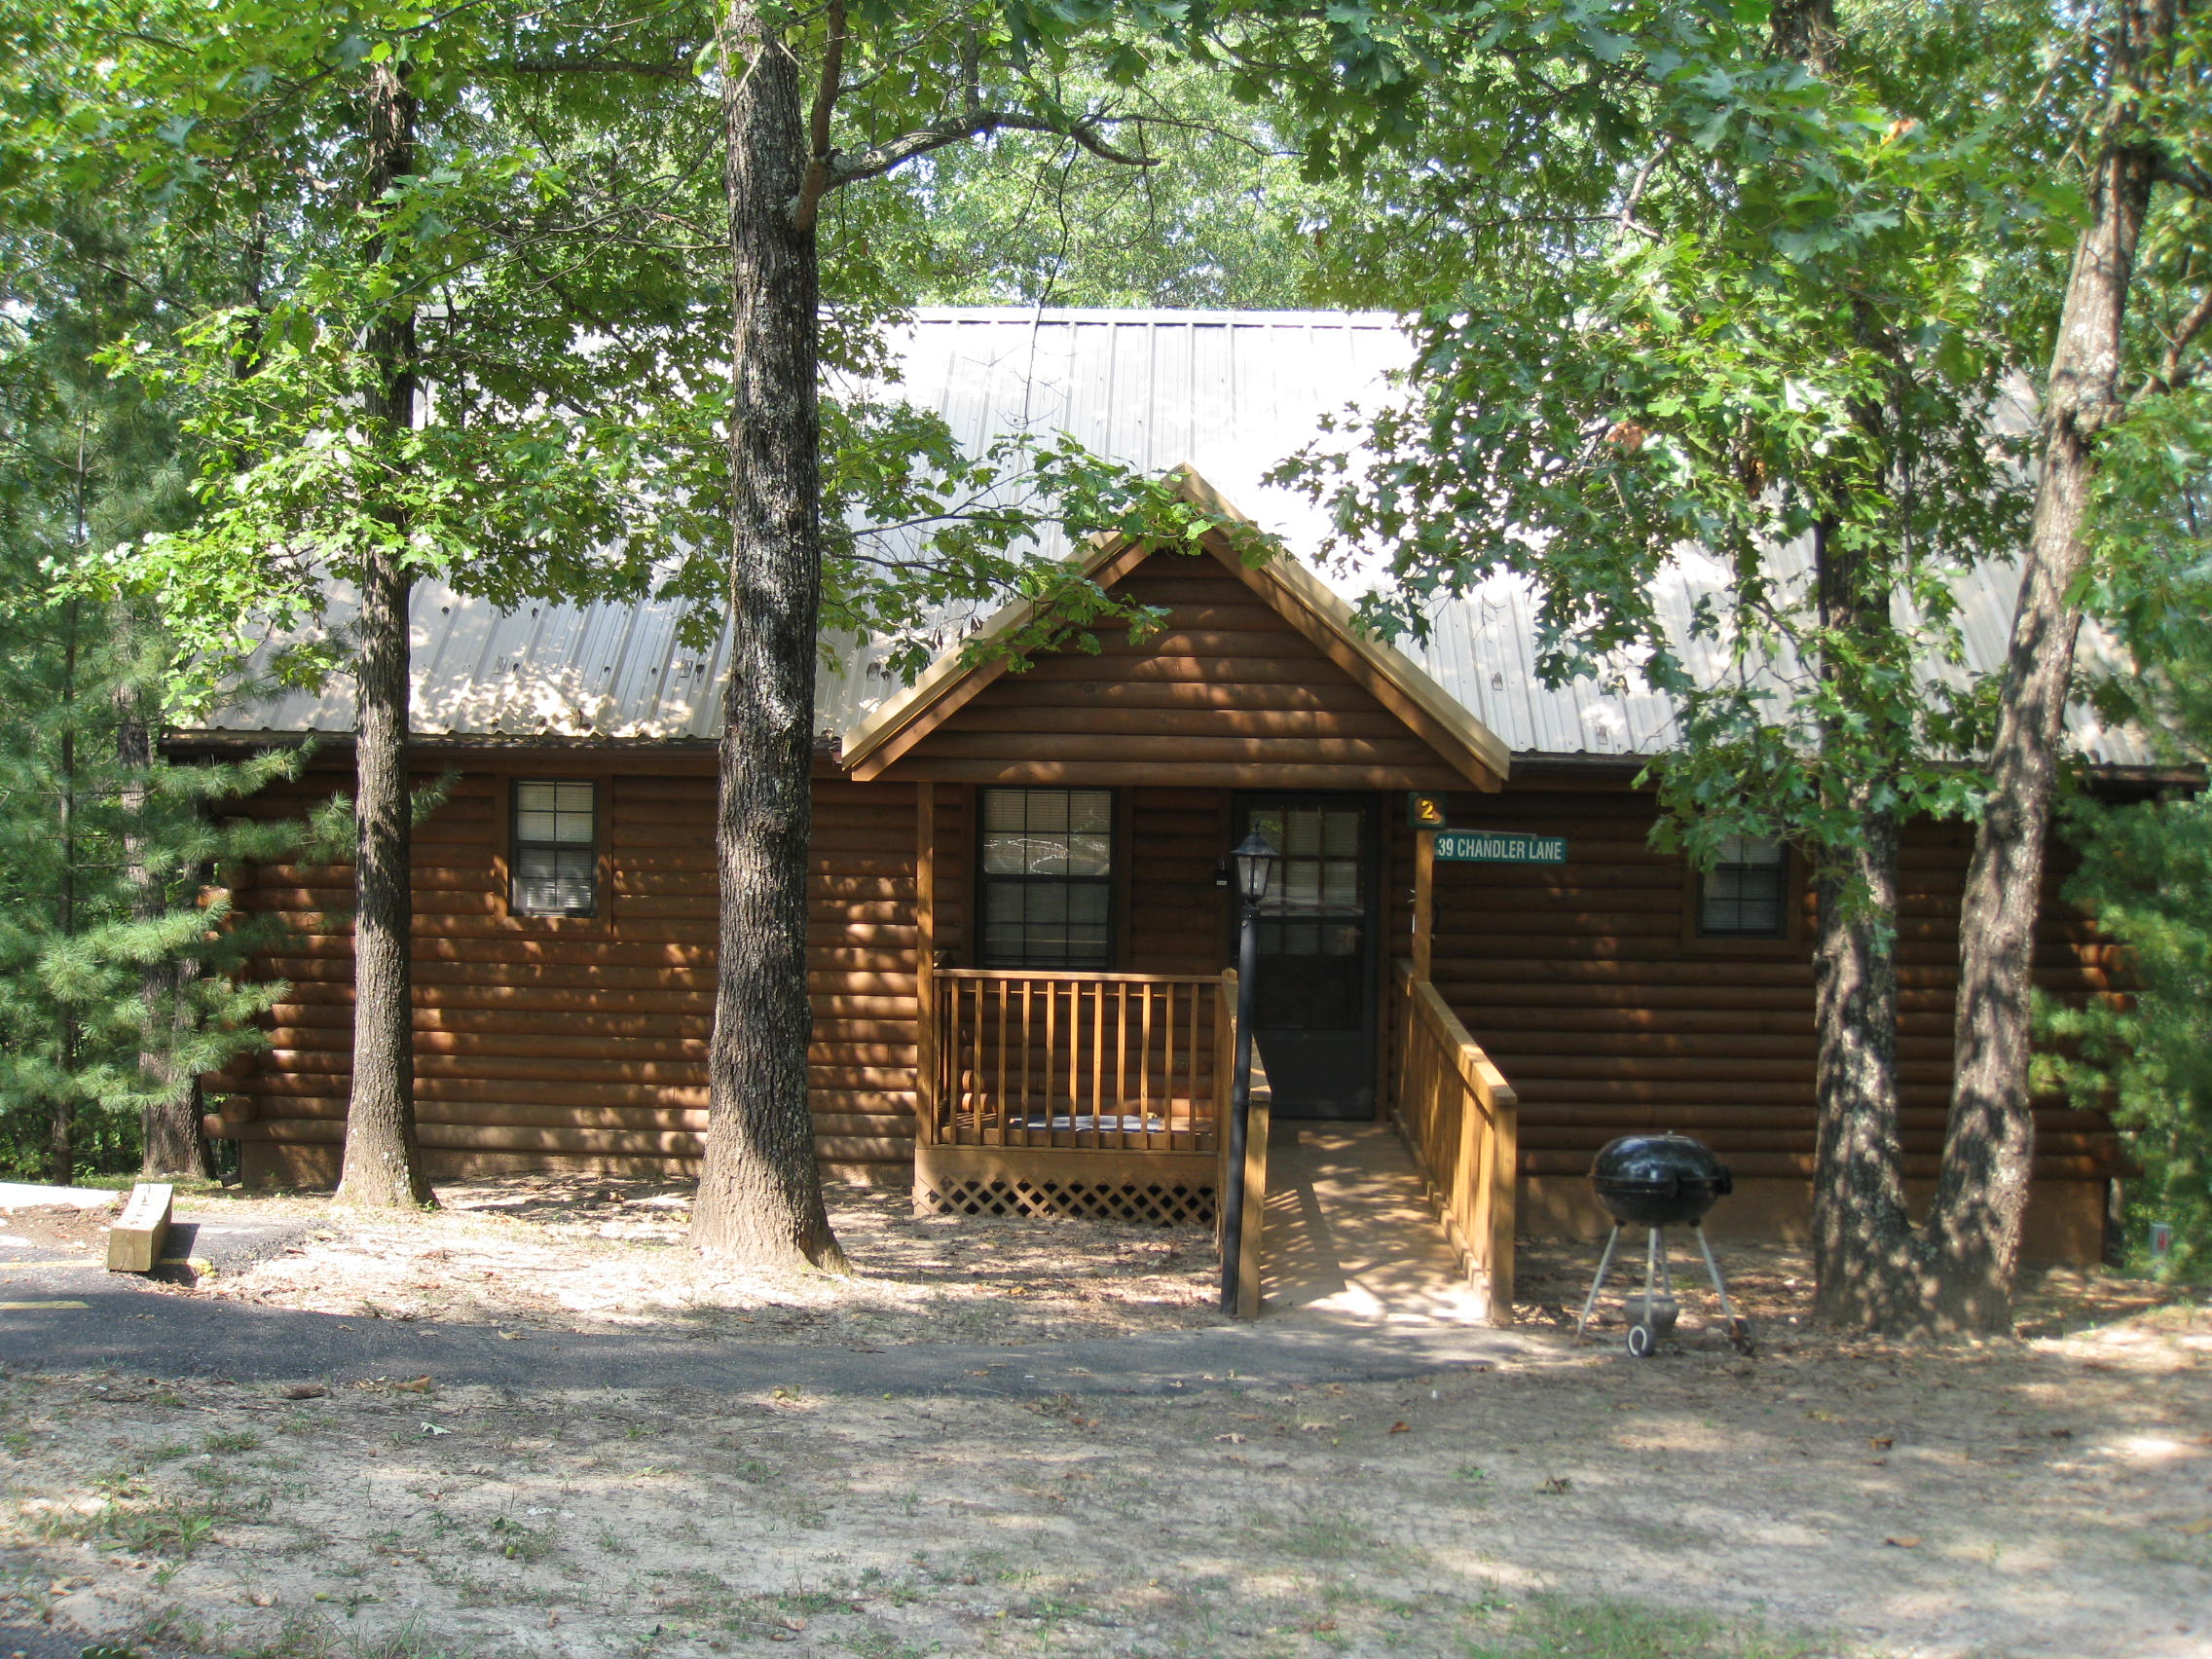 branson by bedroom for the owner rent lake cabins lodging with in hot on mo tubs near missouri